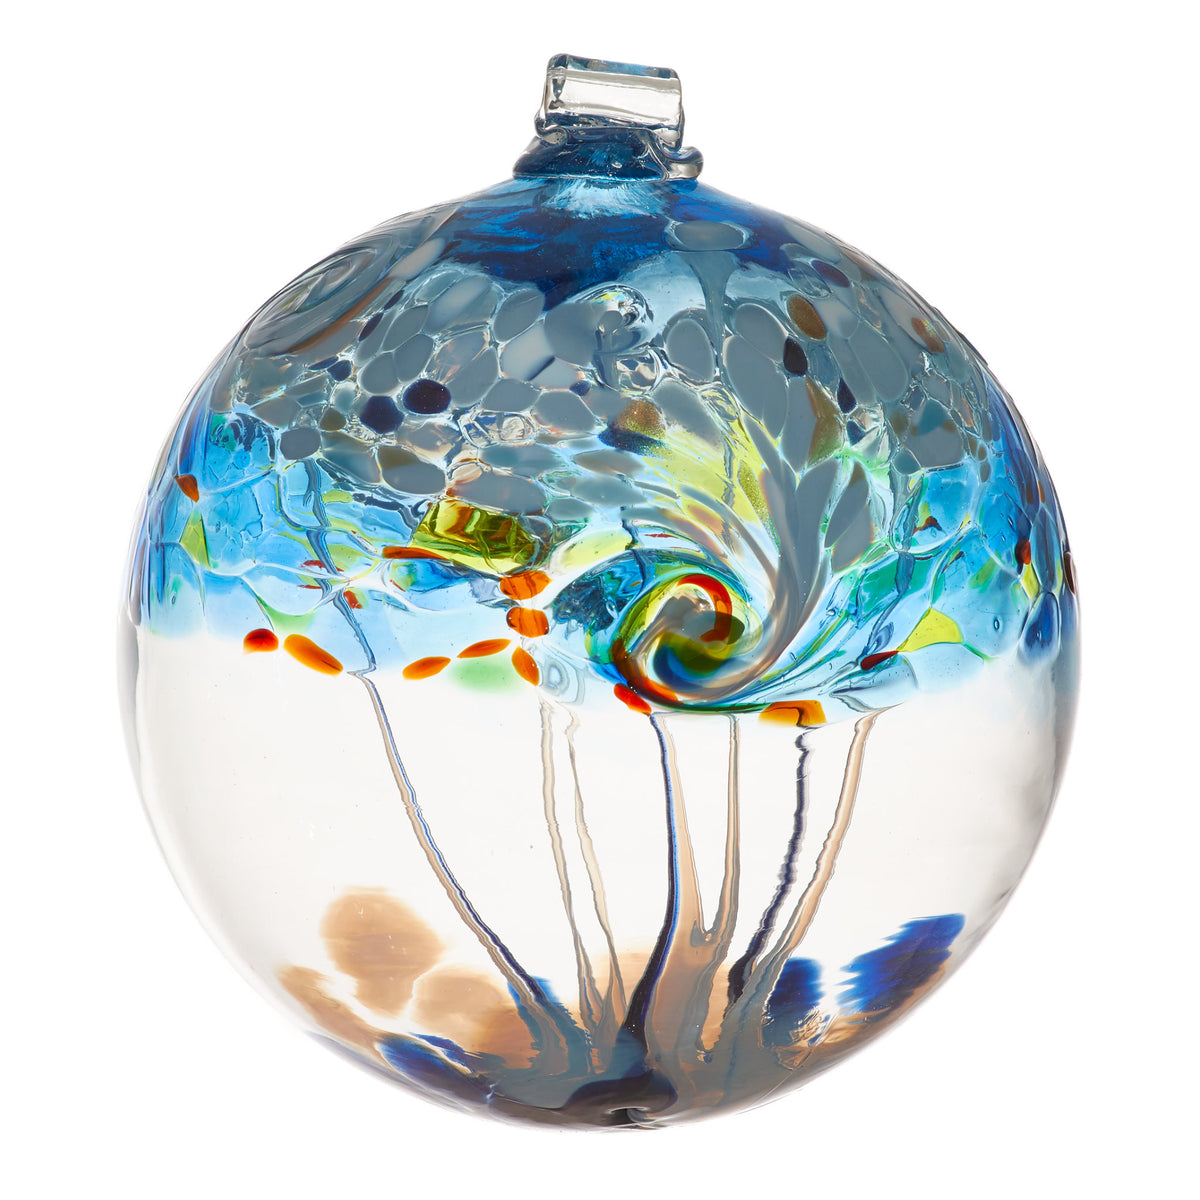 A large clear blown glass ornament whose main color is blue with accents of yellow, green, and orange. White and grey dabs of color come together in a swirl at the midpoint, while webs of glass stretch across the inside of the orb.